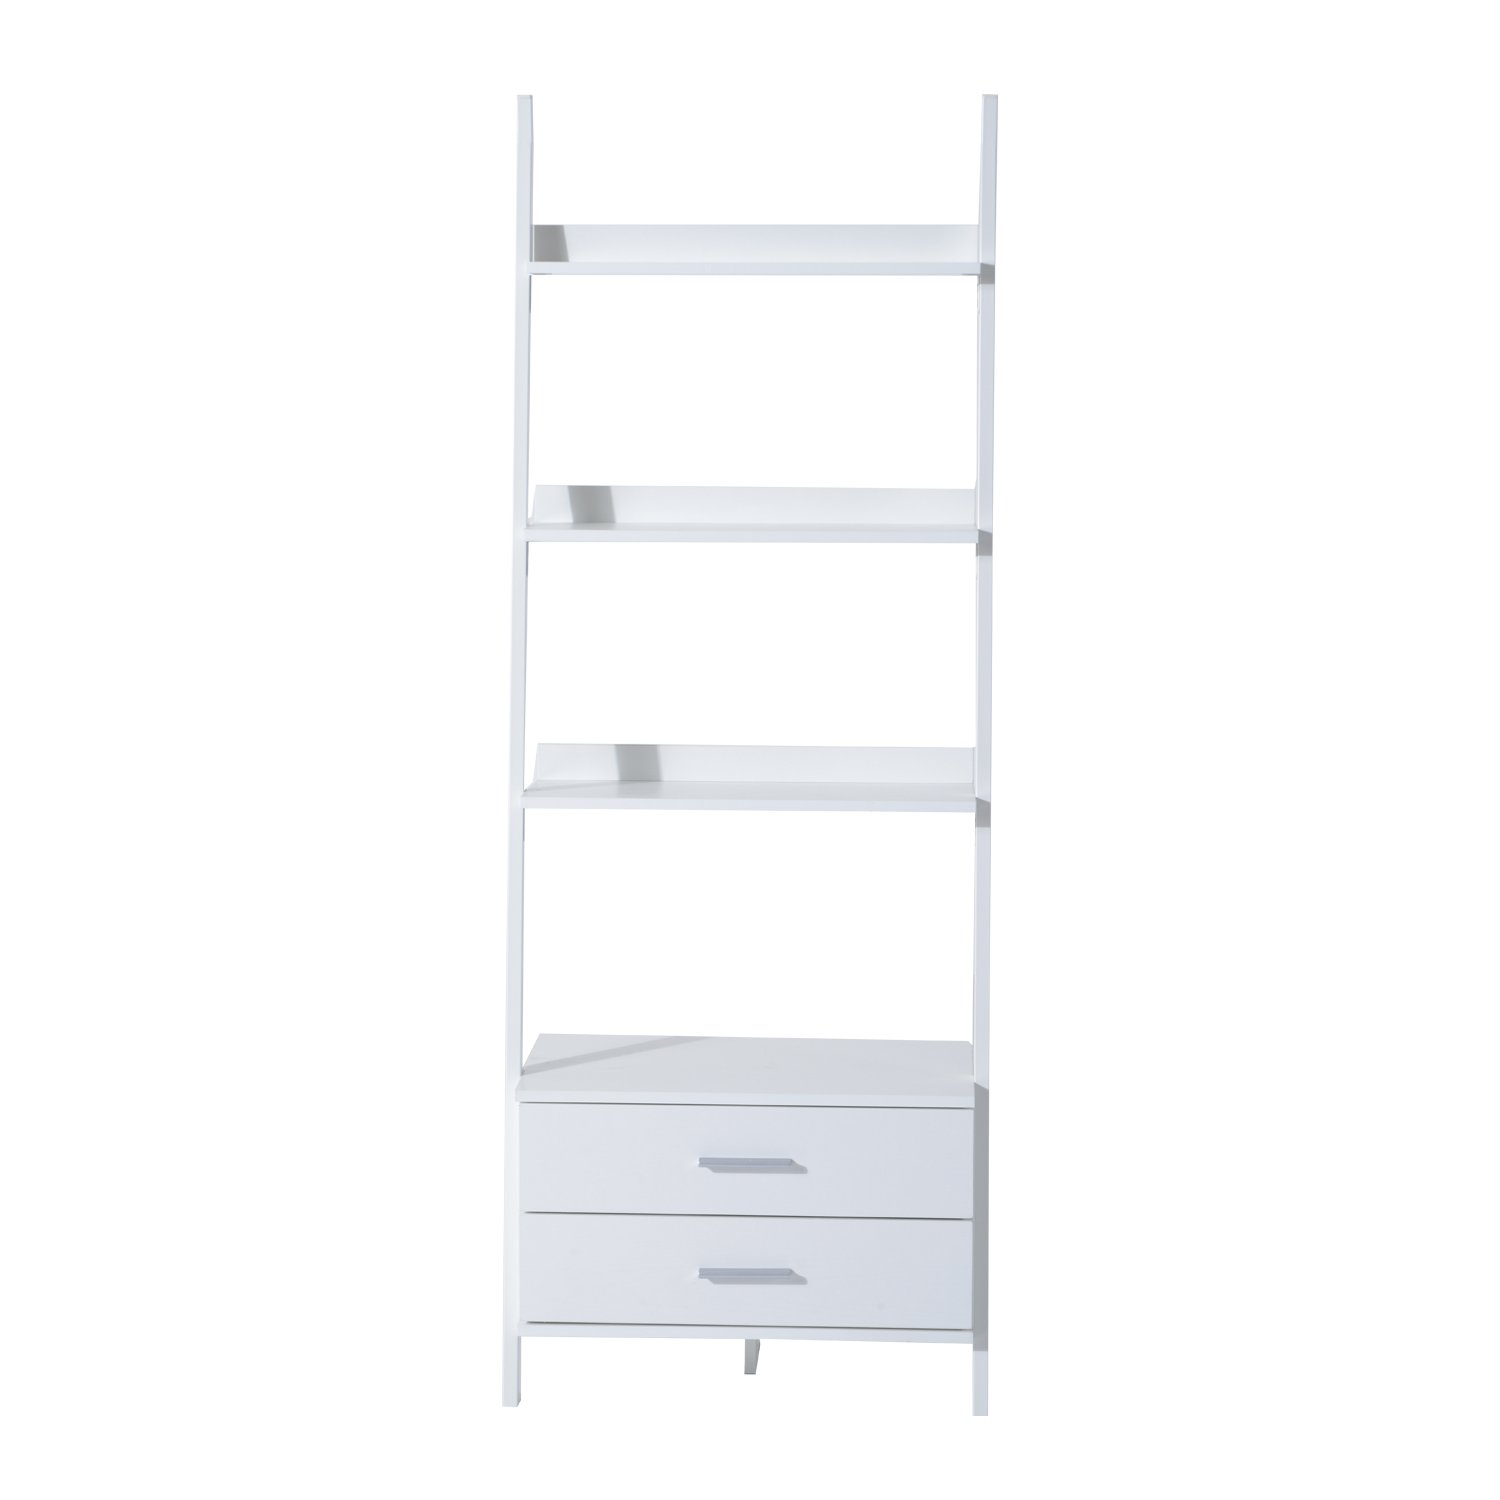 products our offers bookcase ladder with by drawers woodstock photos price